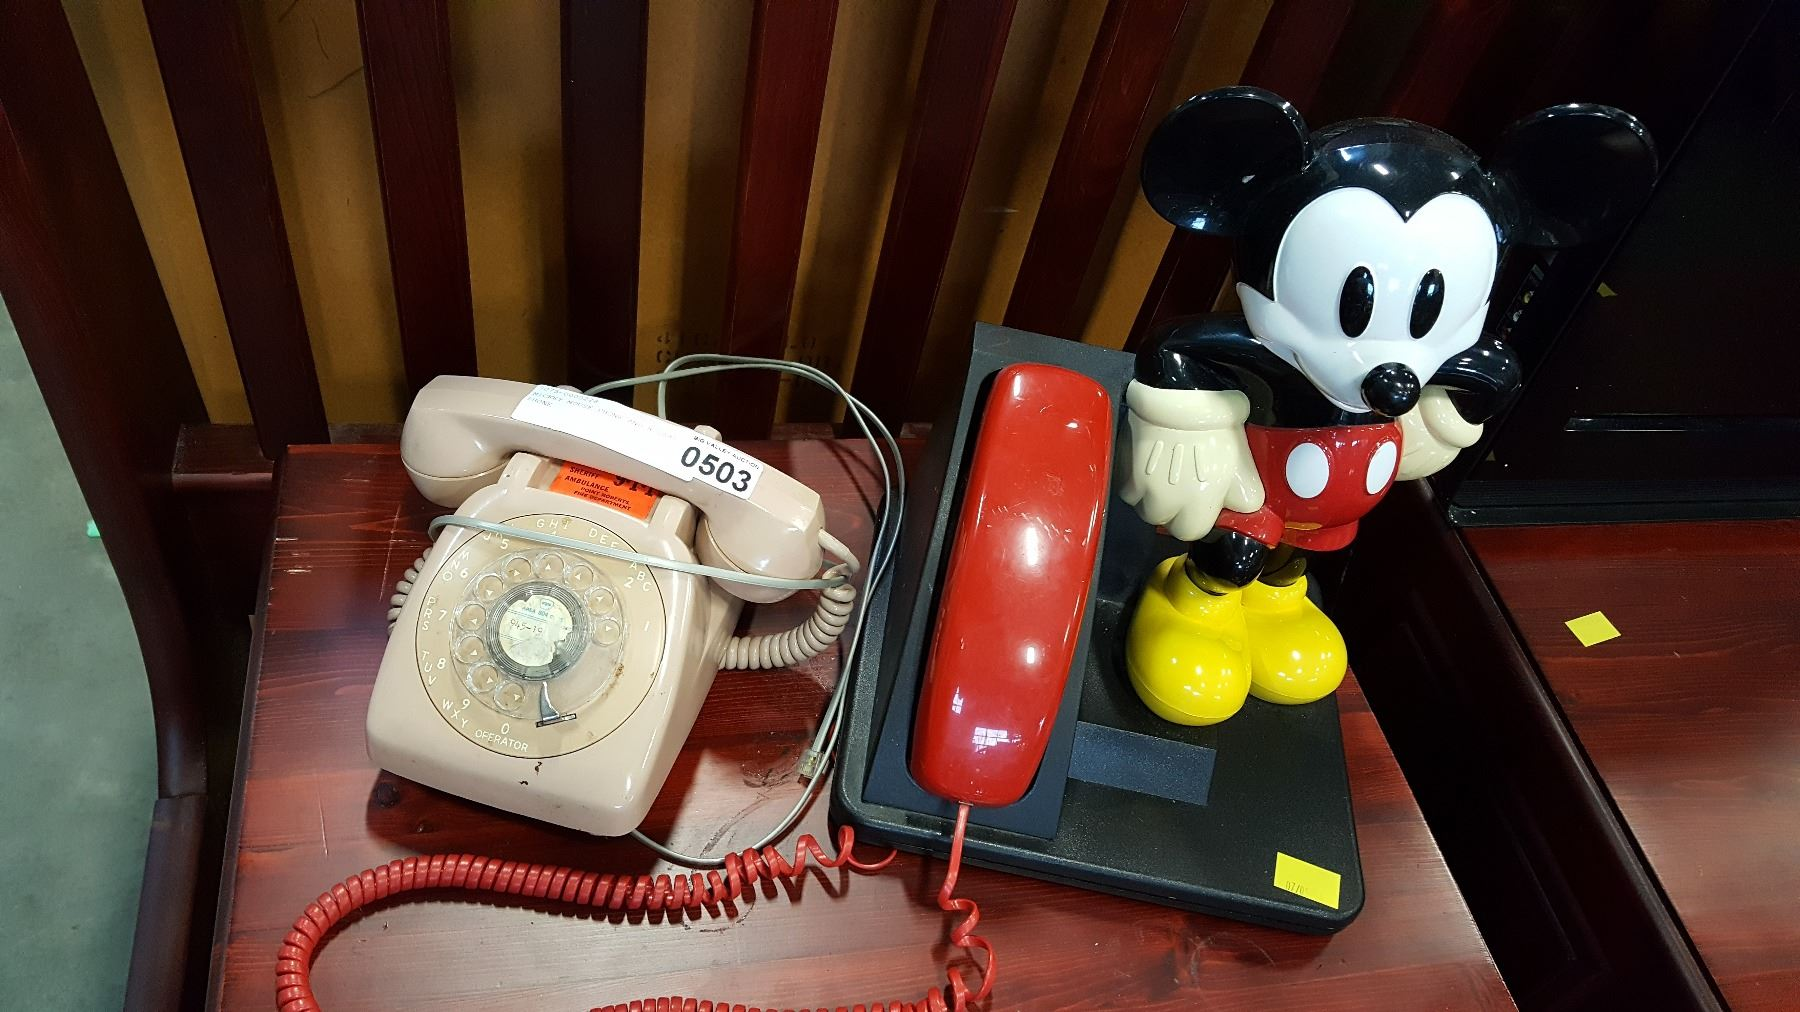 hight resolution of image 1 mickey mouse phone and rotary phone